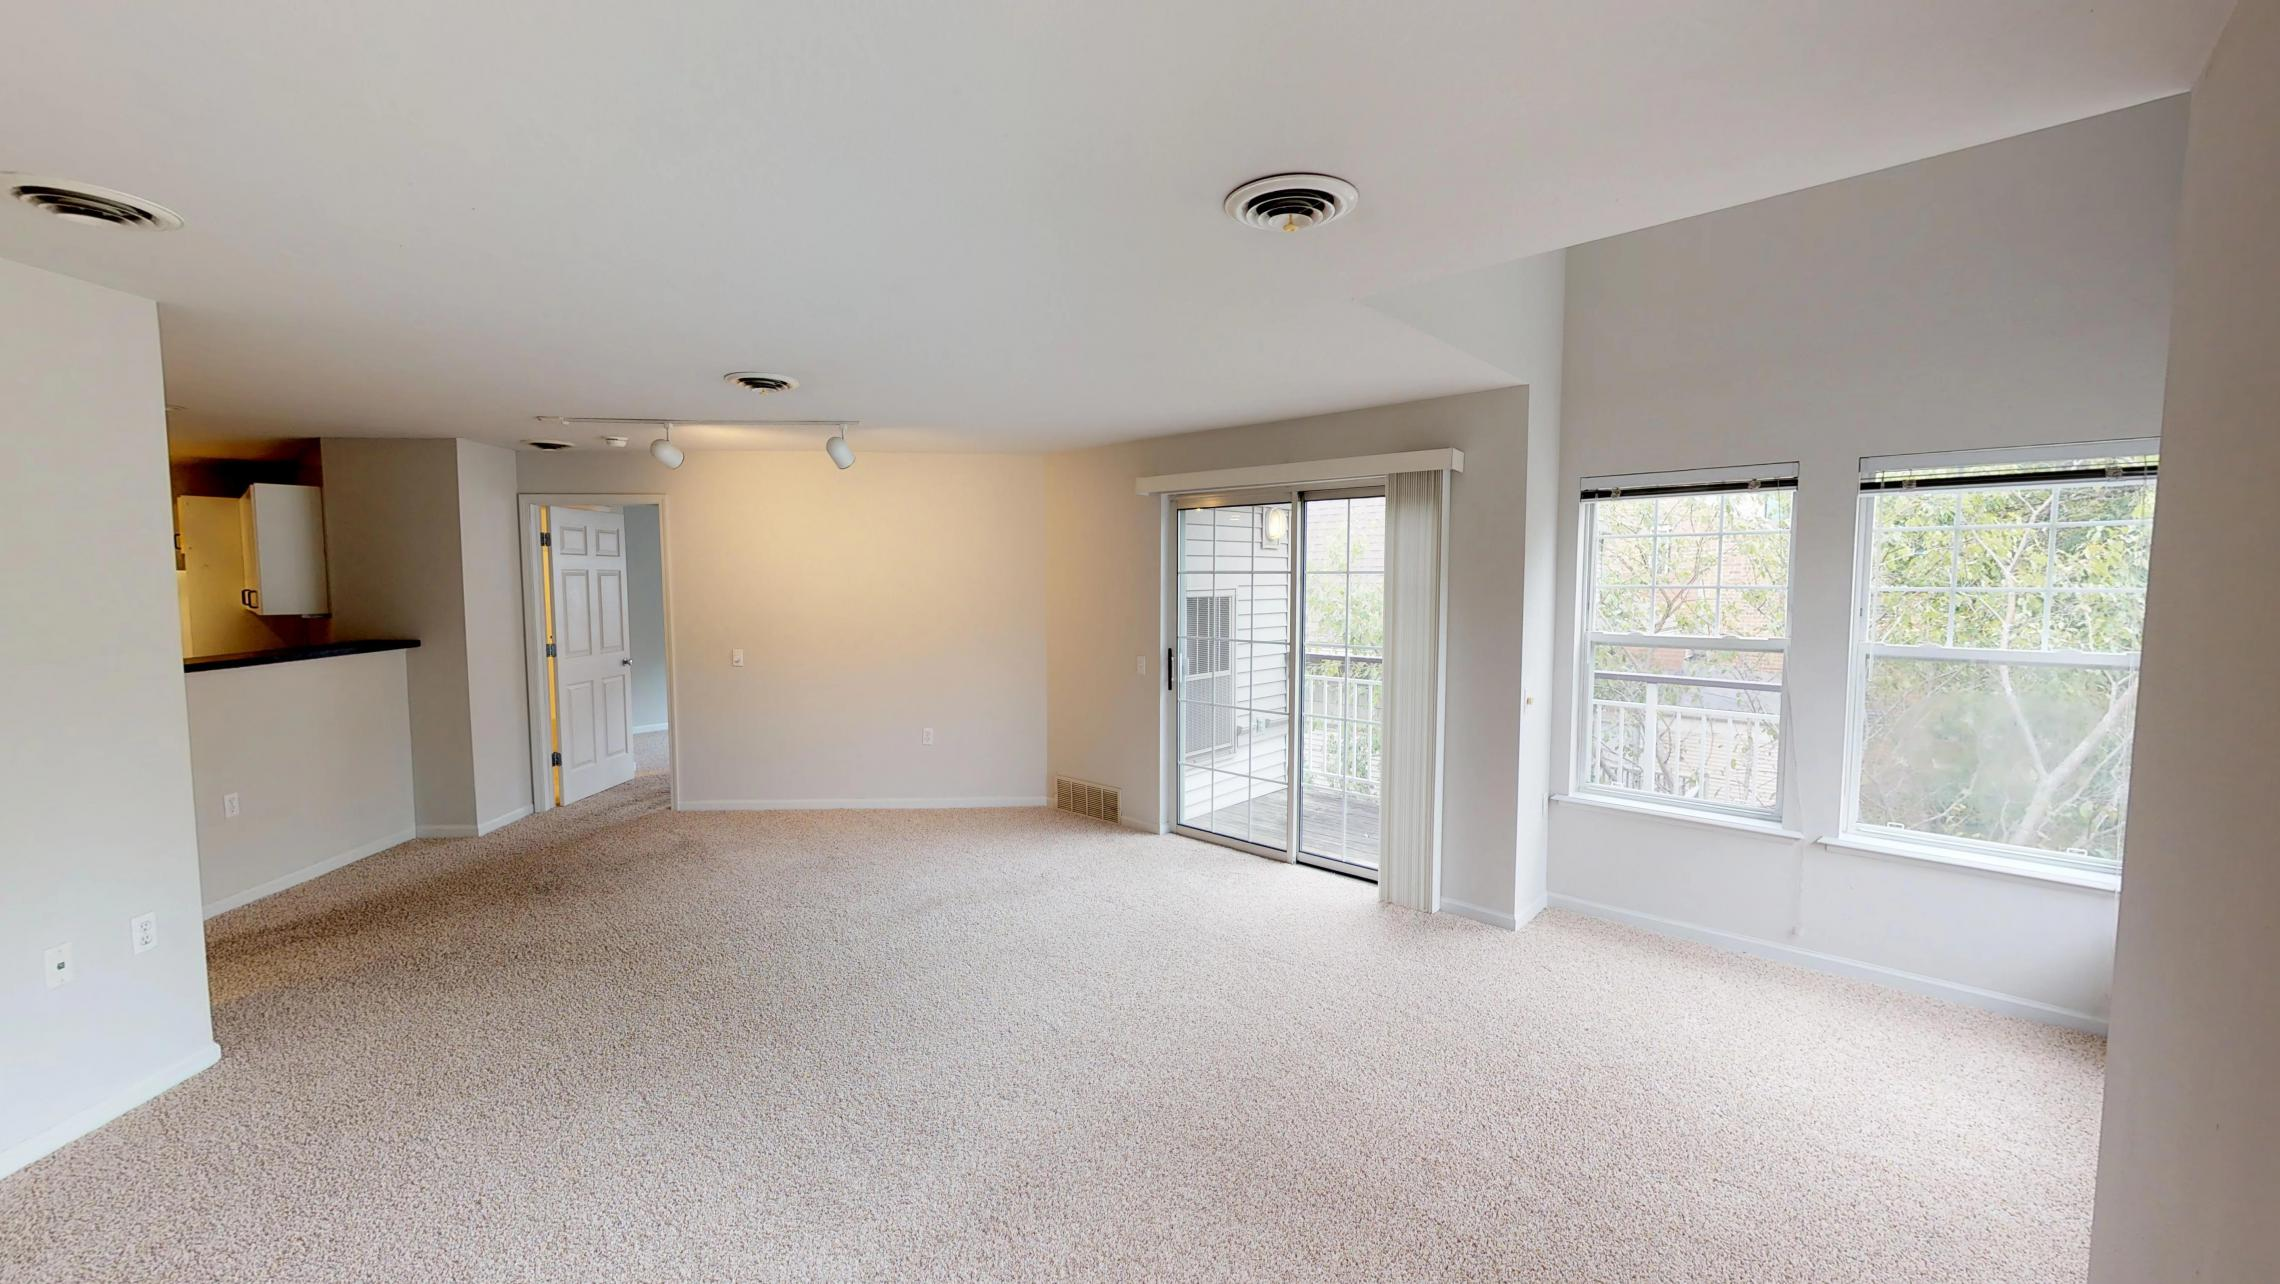 Wilson-Bay-Apartments-306-one bedroom-living room-dinning room-downtown-balcony